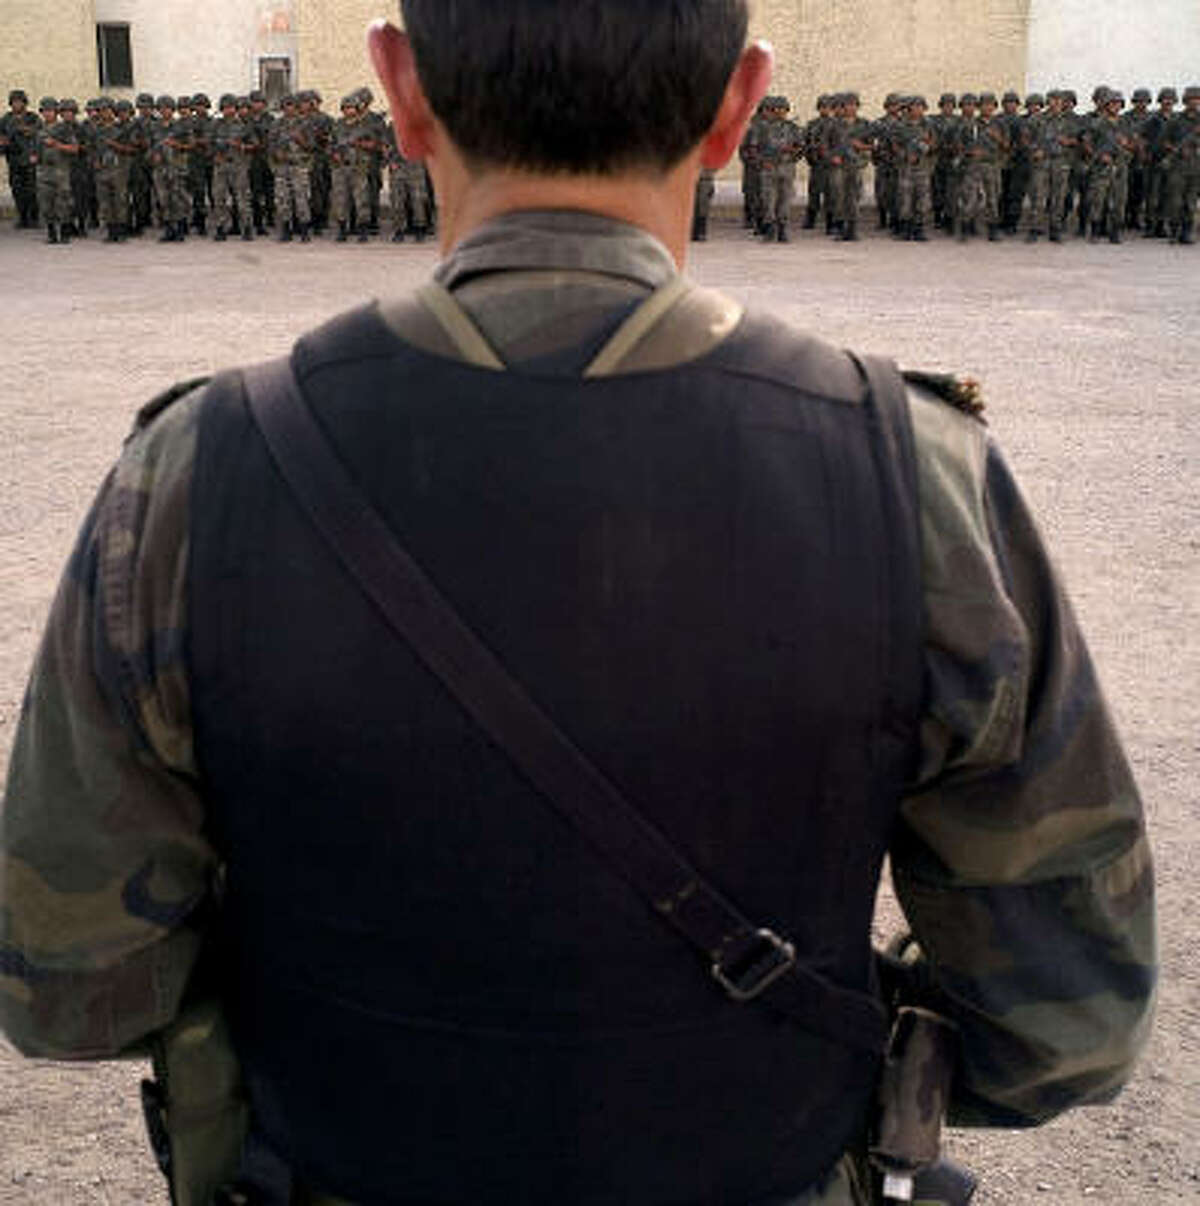 The nearly 10,000 Mexican soldiers and police patrolling Ciudad Juarez do little to stem the violence.